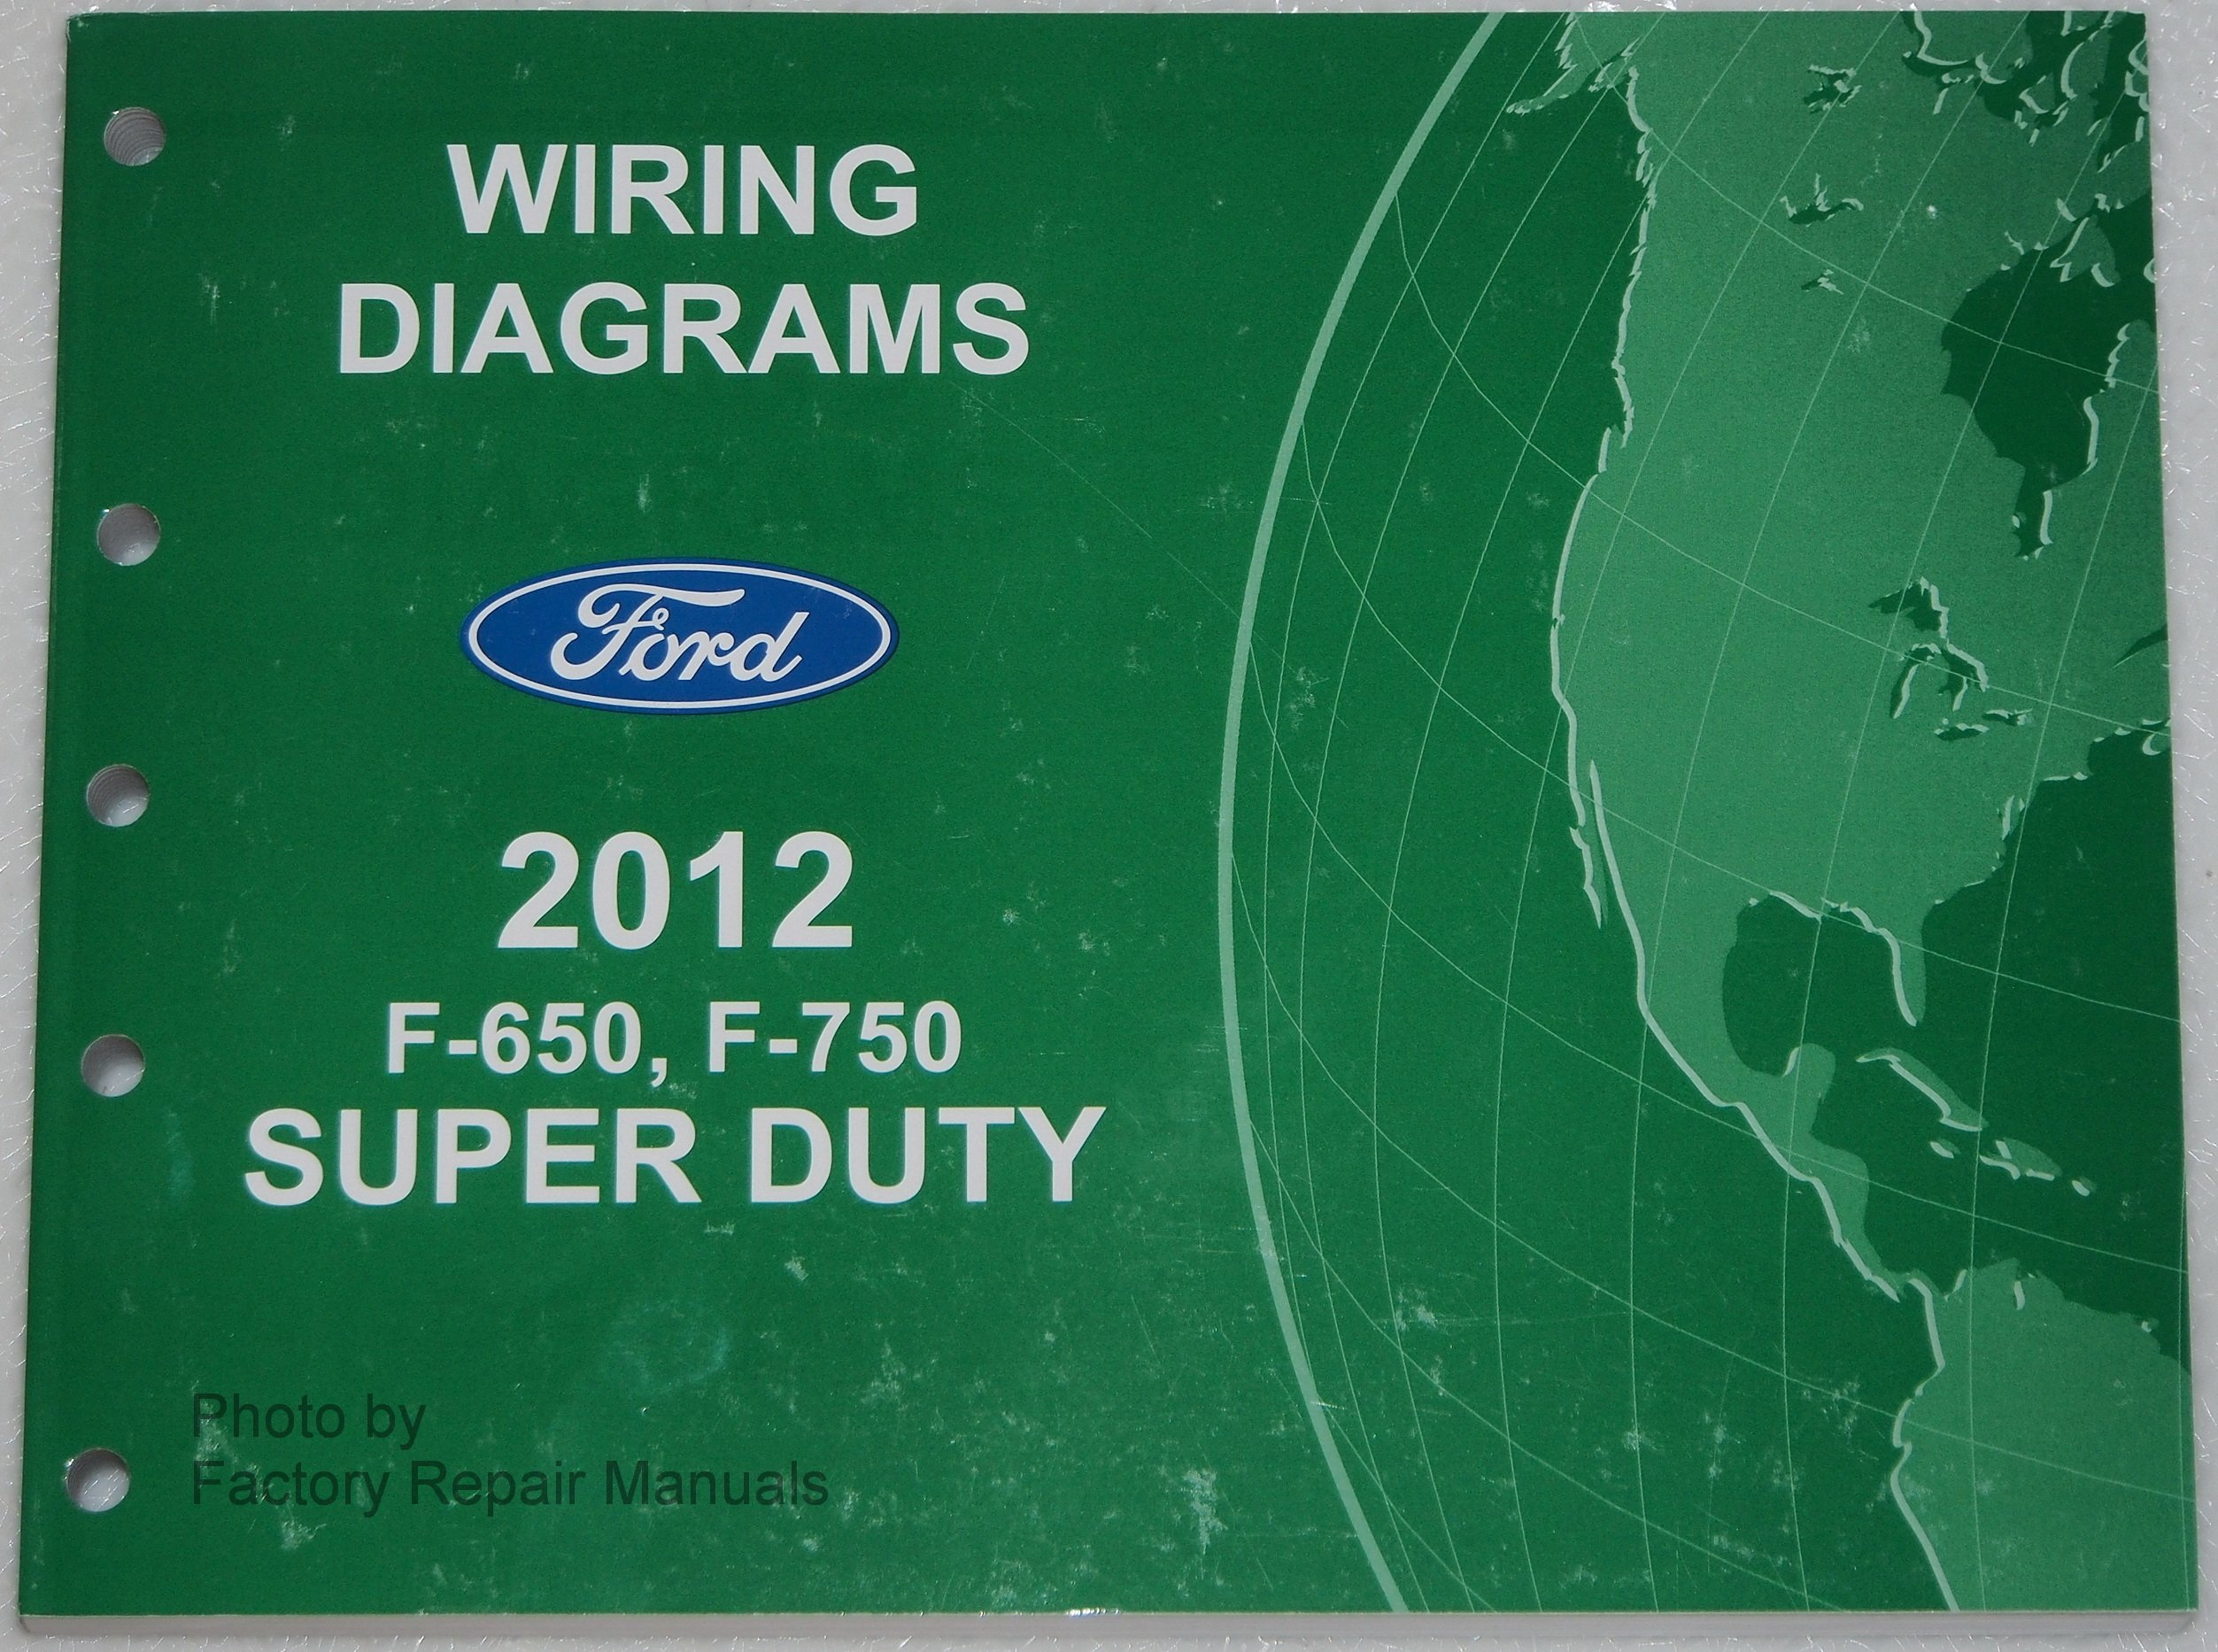 2012 Ford F650 Wiring Diagram Start Building A 2005 F750 Fuse Box Motor Company Amazon Com Books Rh 2001 Truck Radio Diagrams